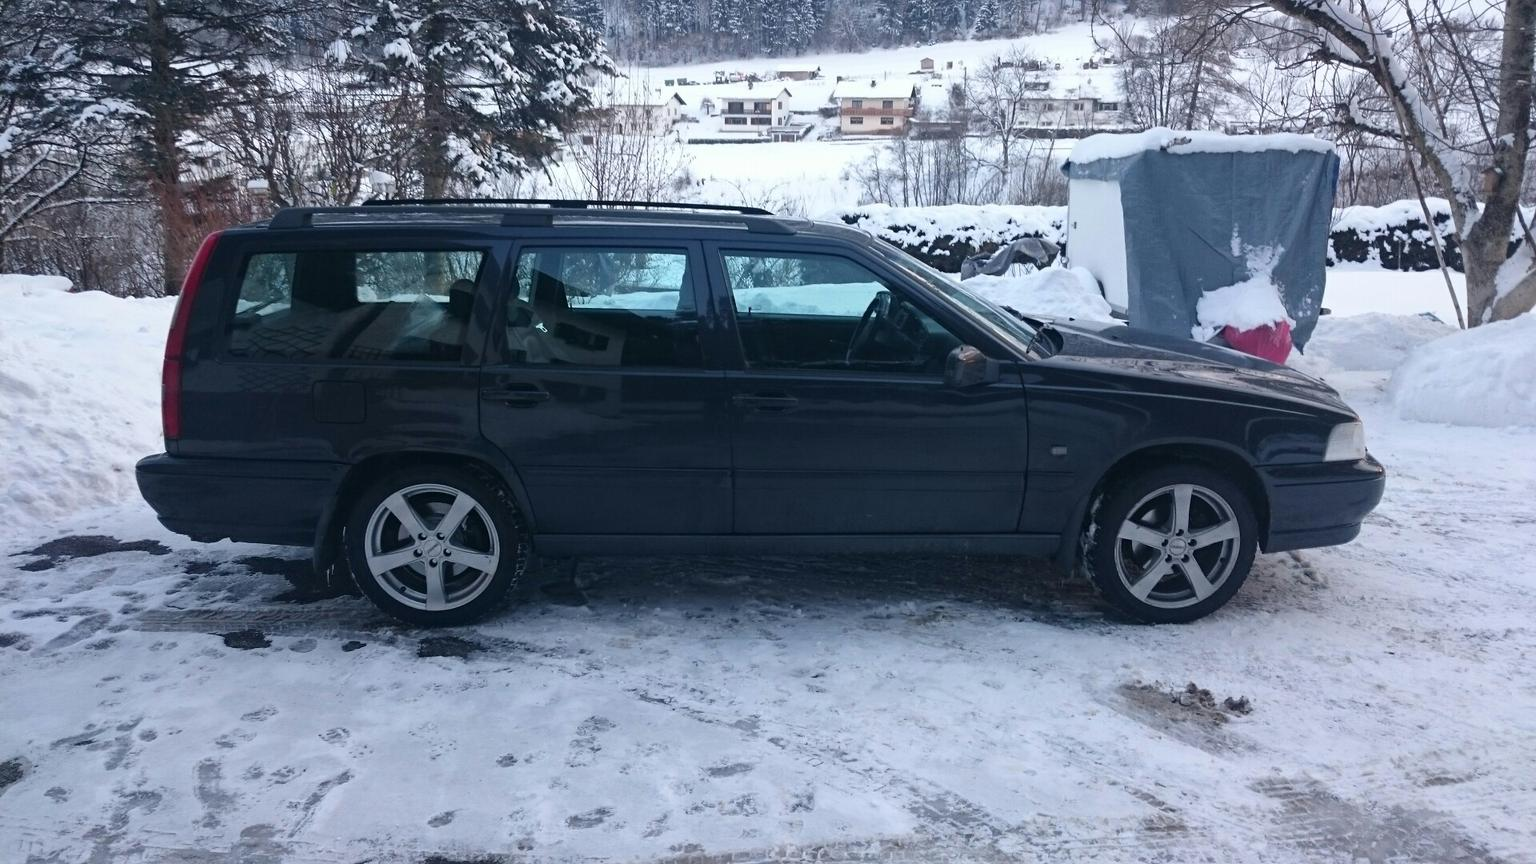 Antriebswelle rechts Automatik Volvo S60 V70 II AWD Allrad